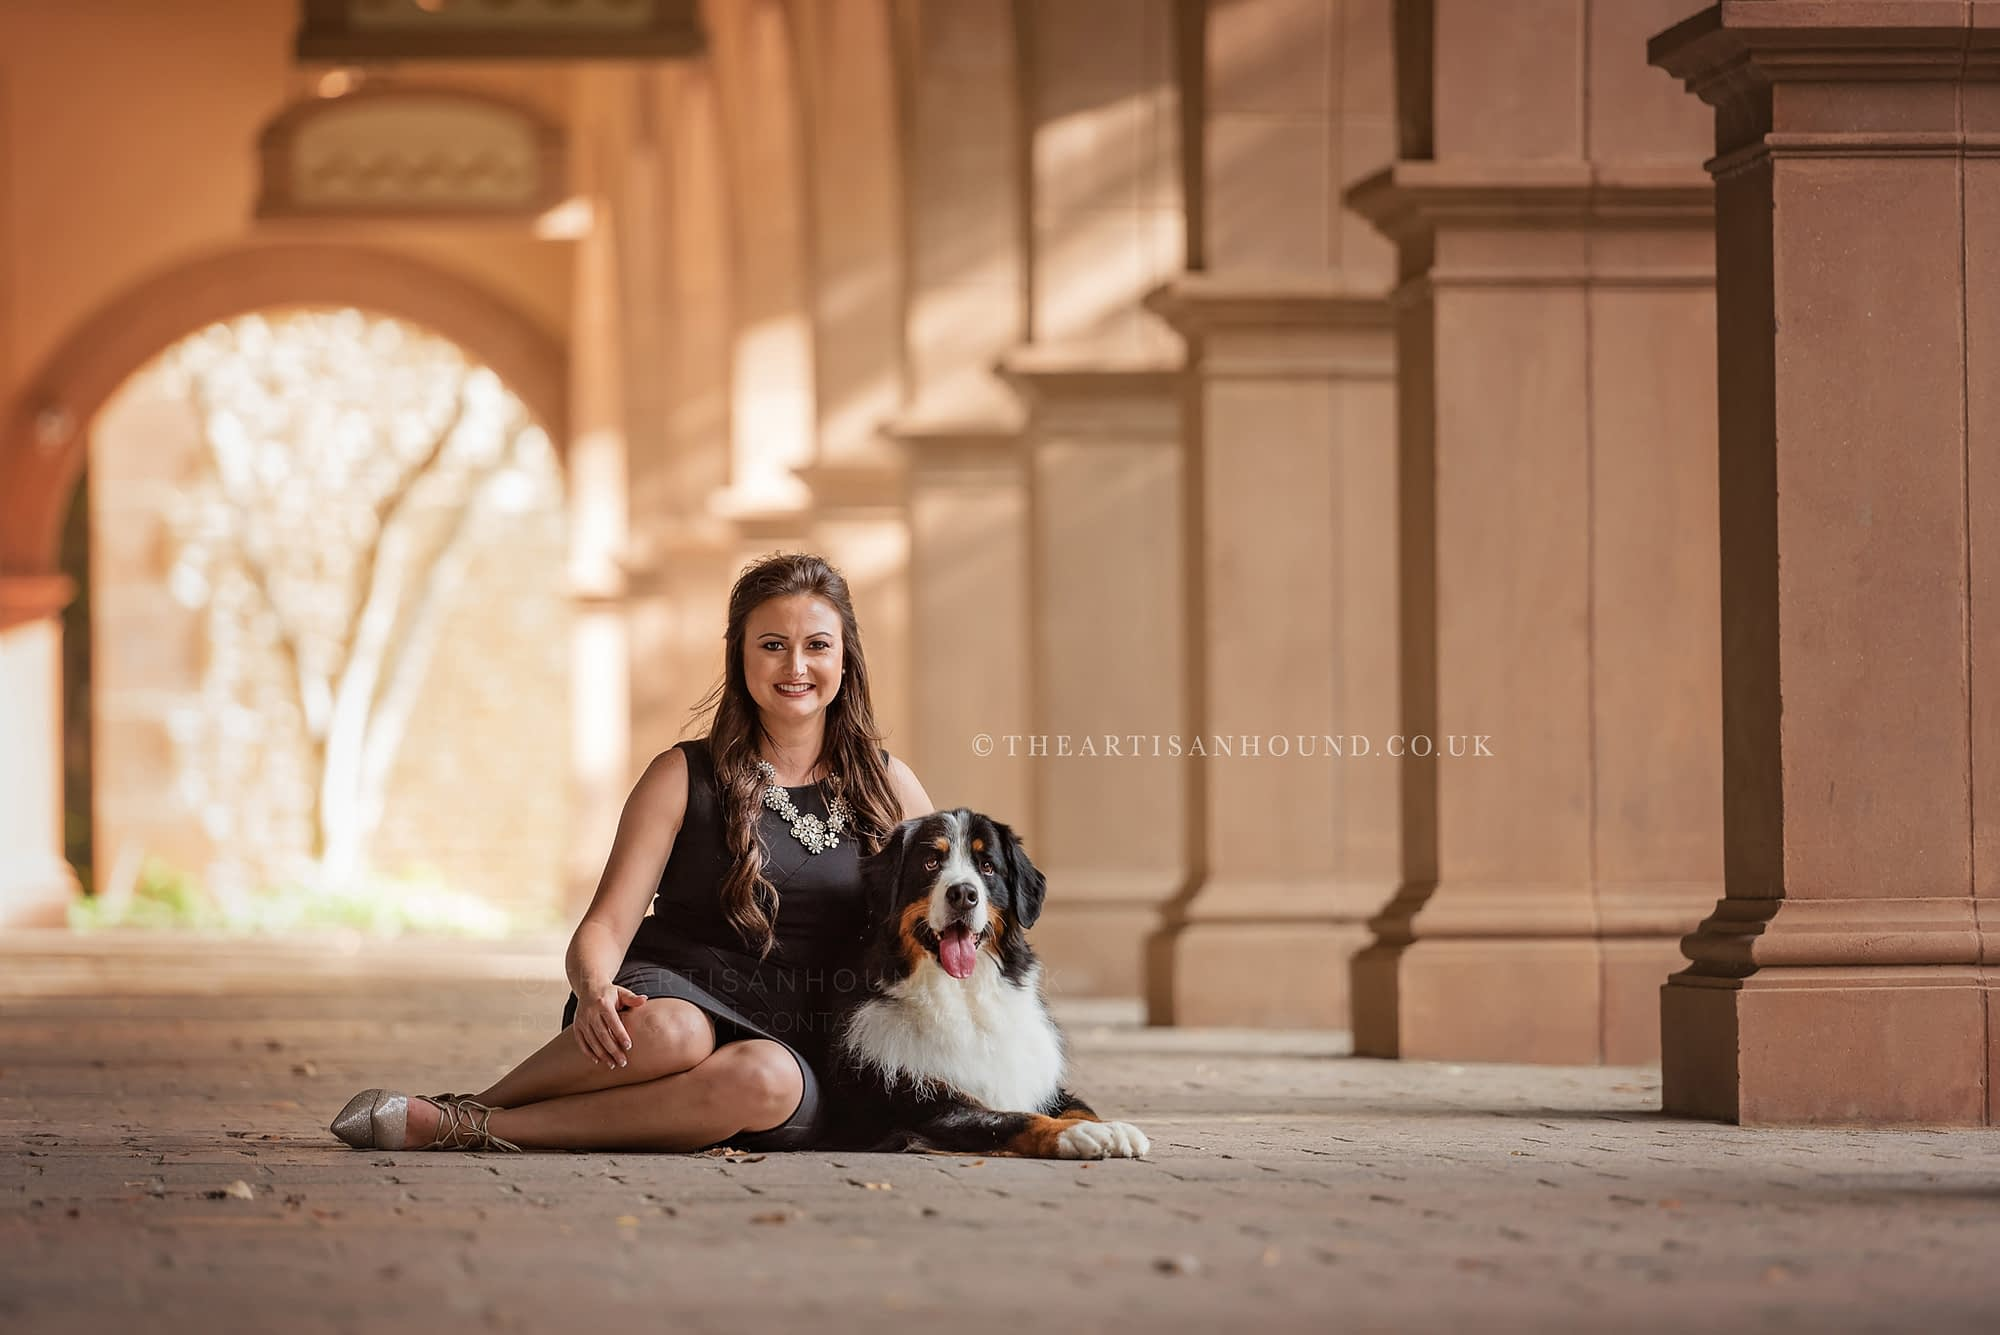 Bernese mountain dog and owner sitting in walkway with columns